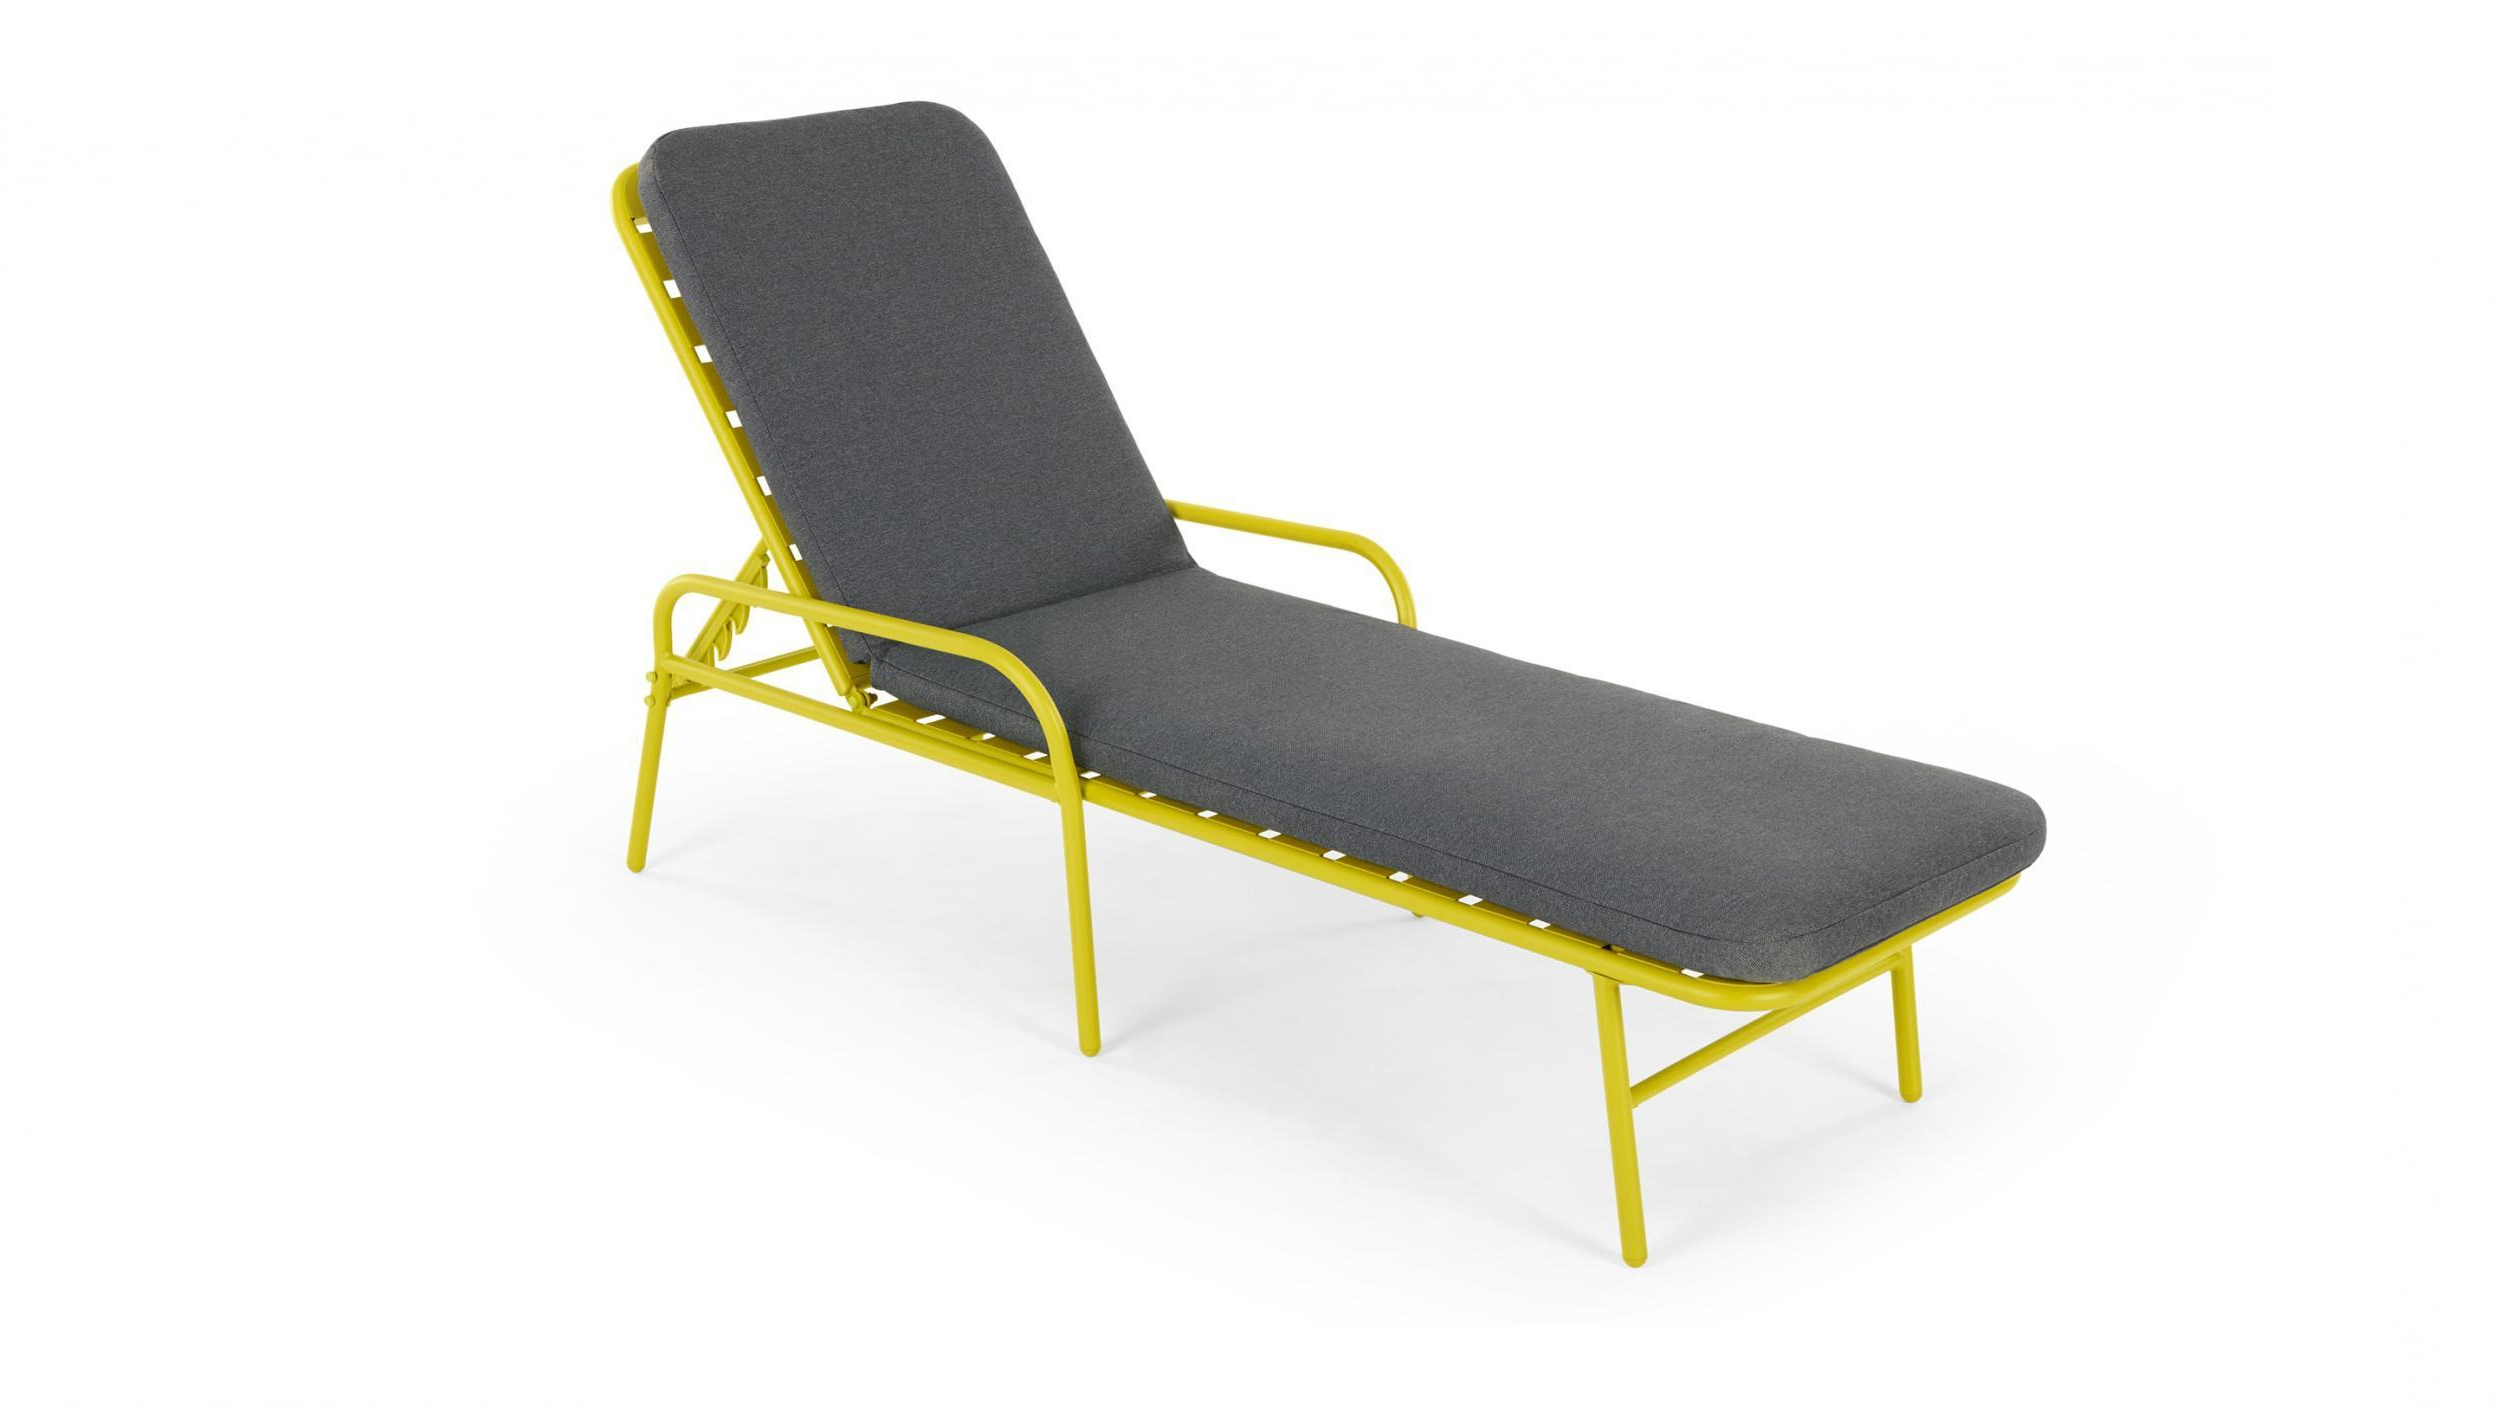 Famous Best Sun Lounger: Choose From Styles That Are Comfortable Regarding Curved Folding Chaise Loungers (View 8 of 25)